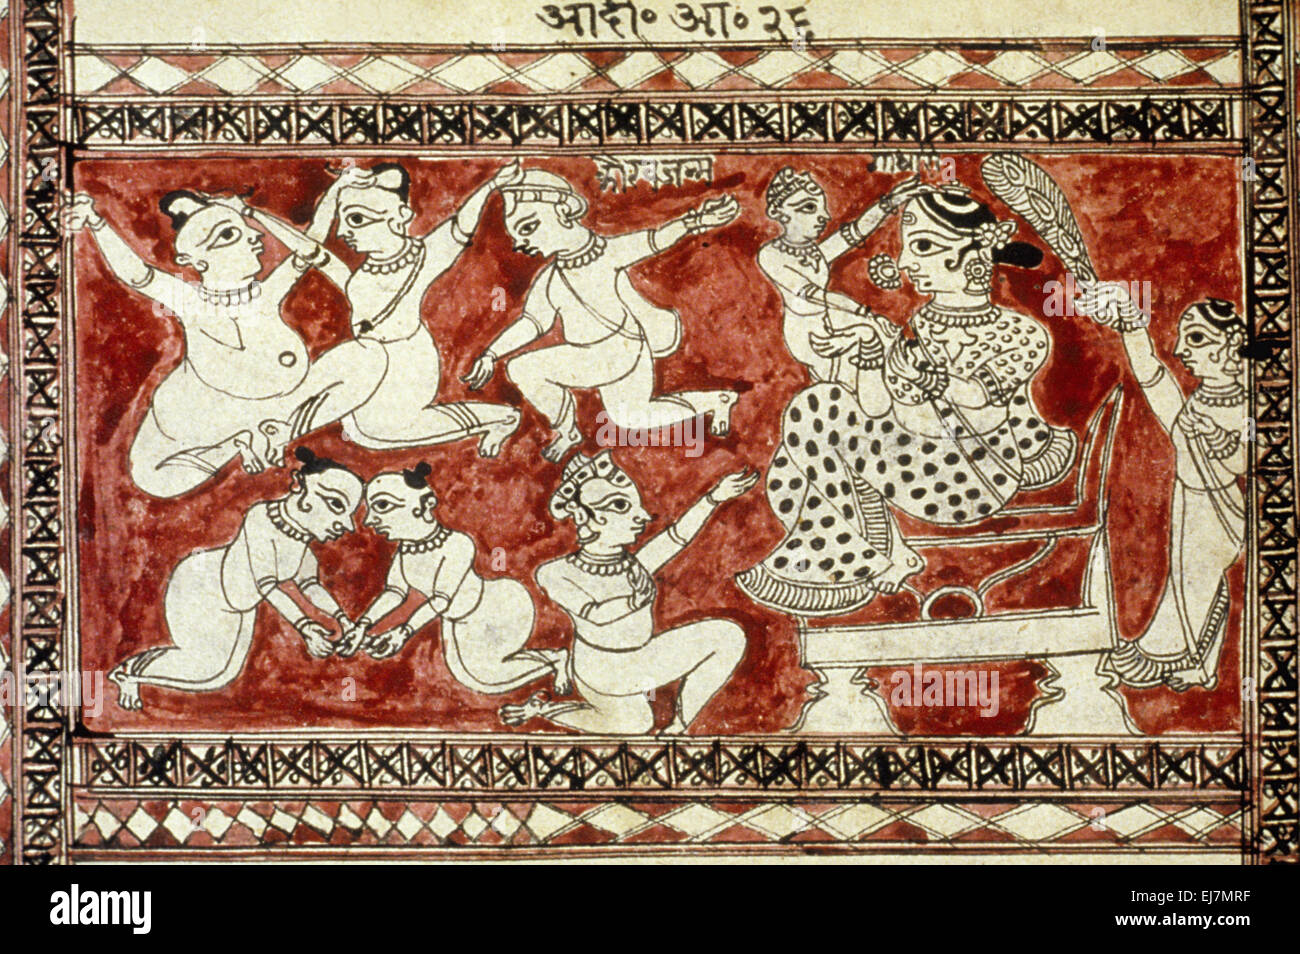 Birth of Kauravas. Gujarat, circa 19th. Century A.D., India - Stock Image